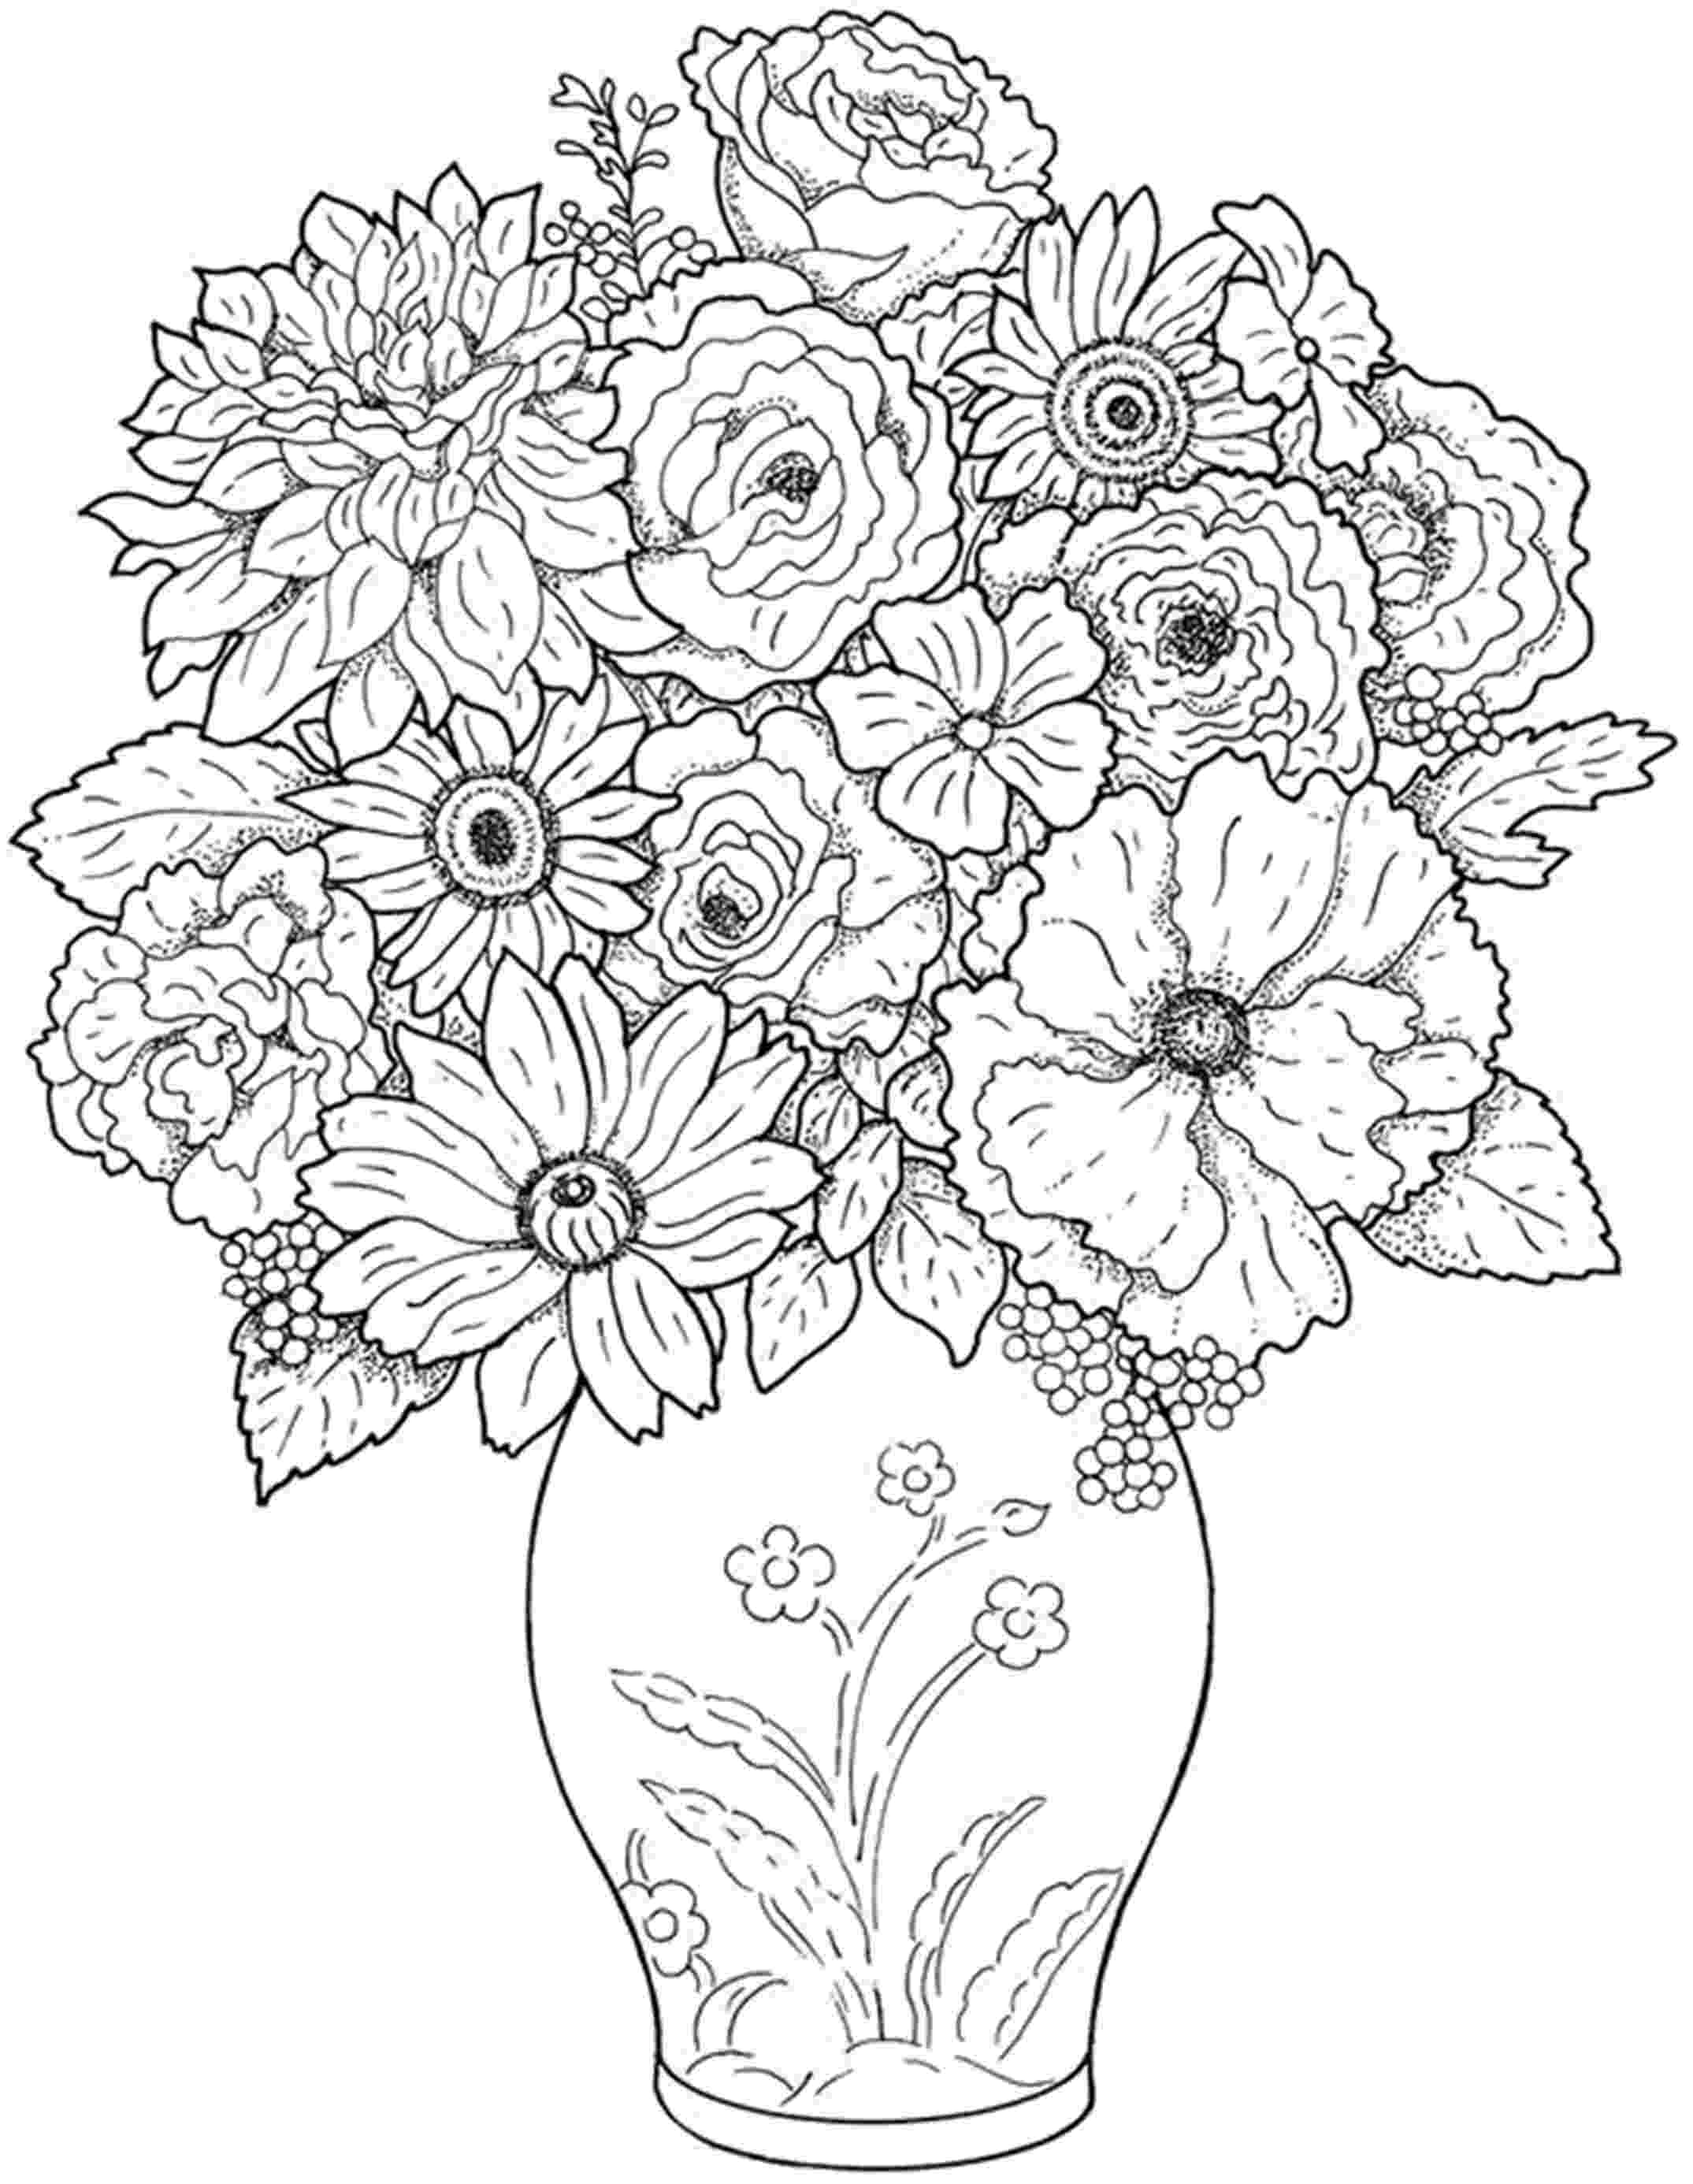 free flower pictures to print and color free printable flower coloring pages for kids best color pictures and print flower to free